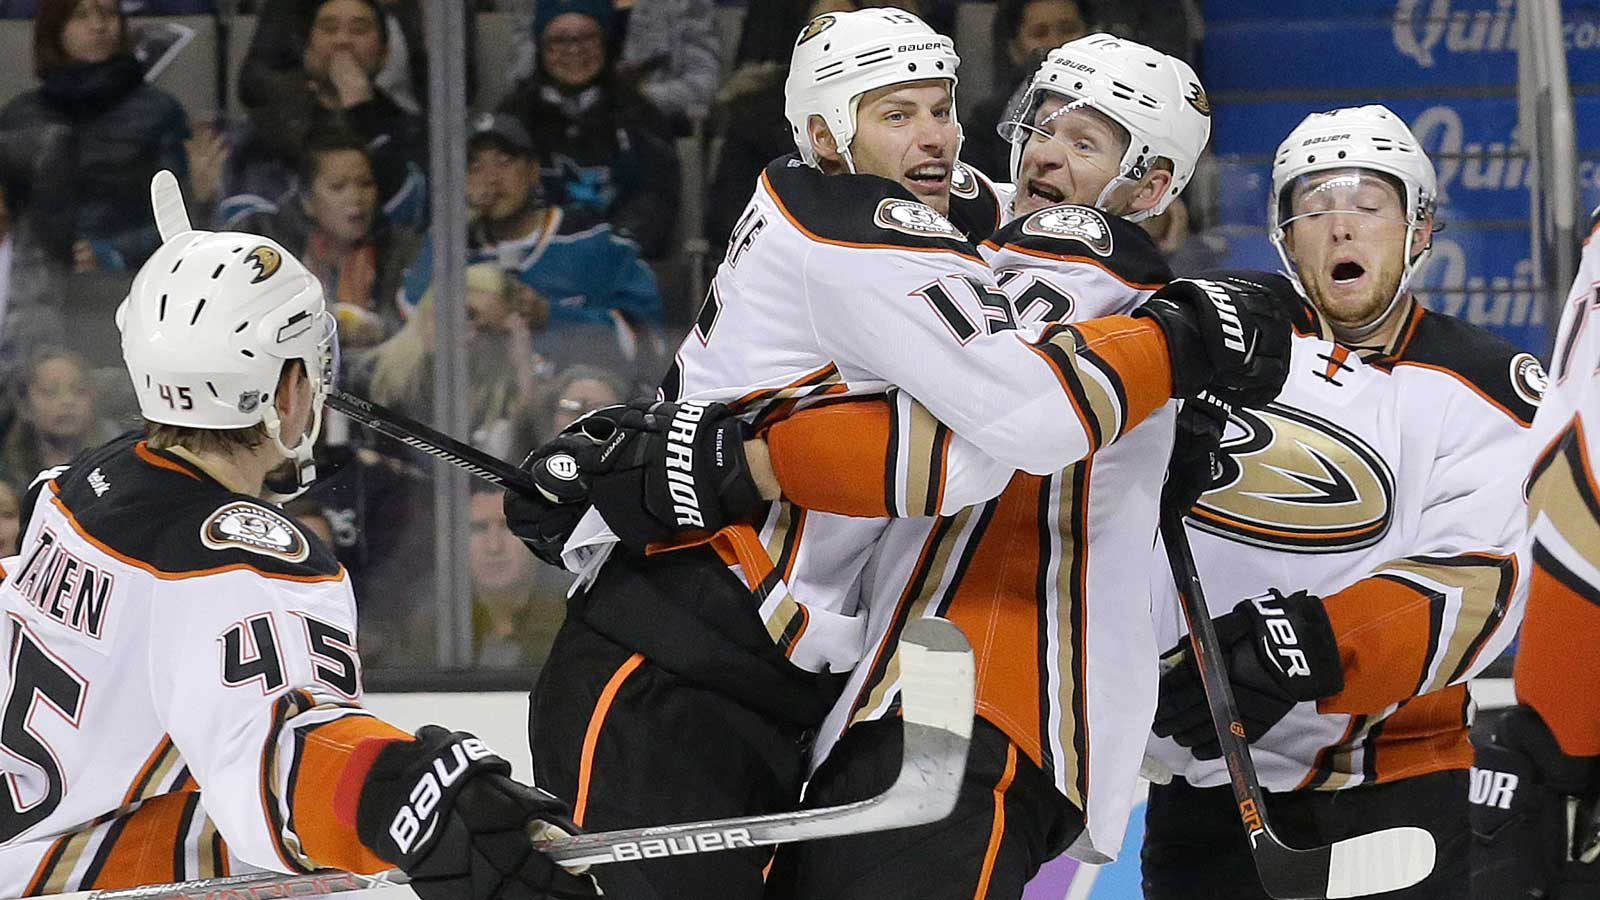 Getzlaf helps Ducks top Sharks 3-2